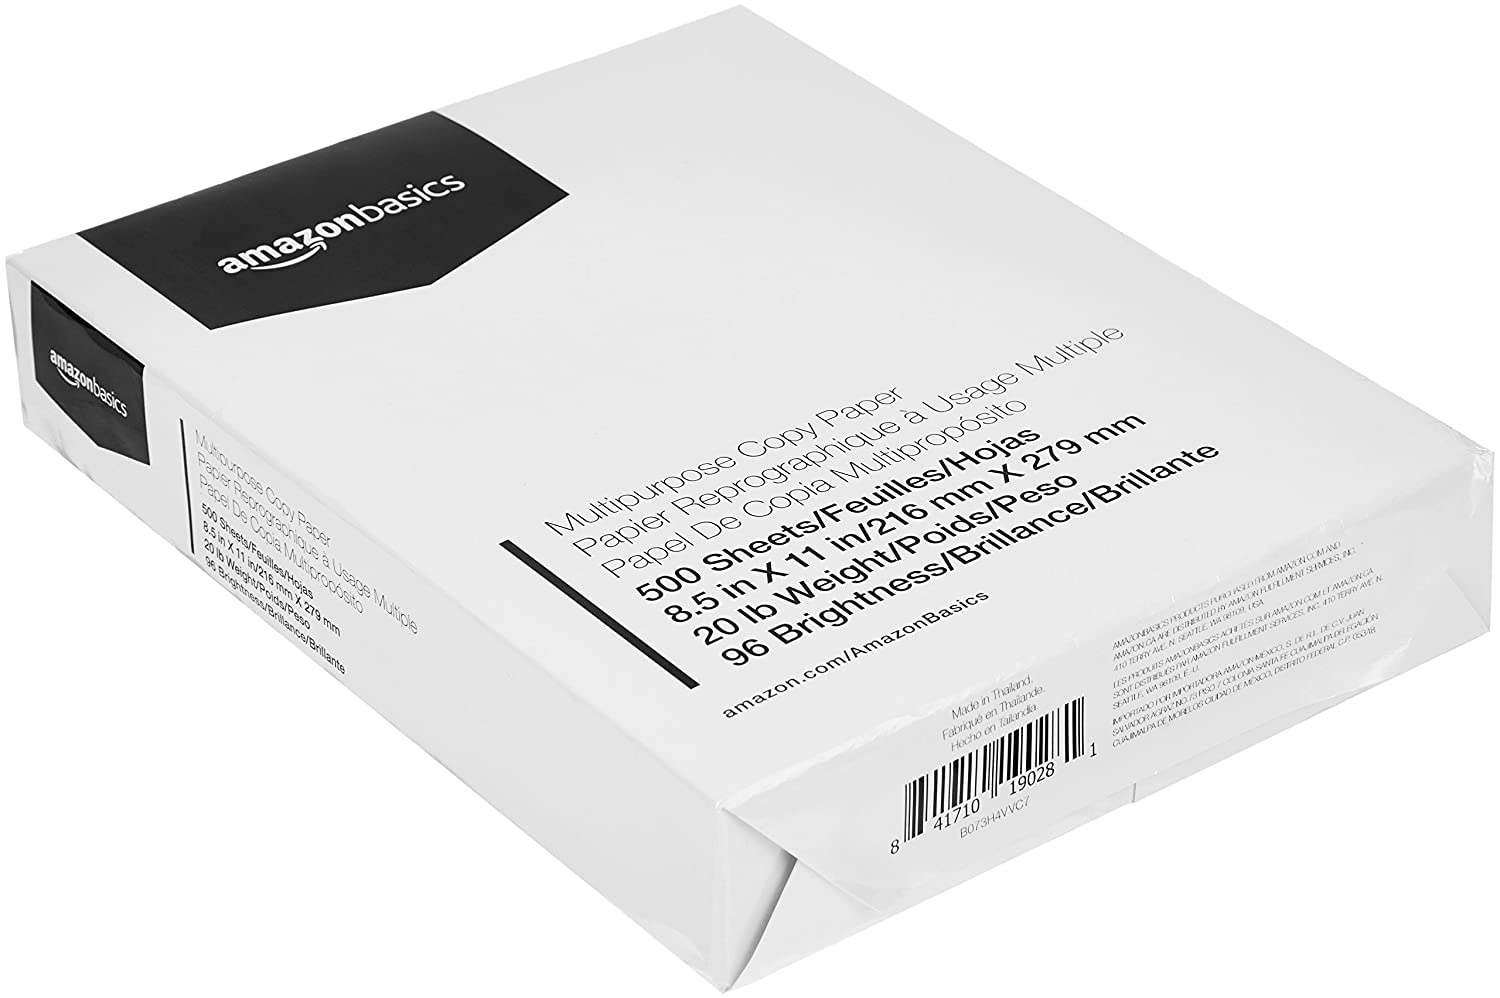 8.5 x 11 Inches 500 Sheets 1 Ream 96 Bright 20 lbs Basics Multipurpose Copy Paper